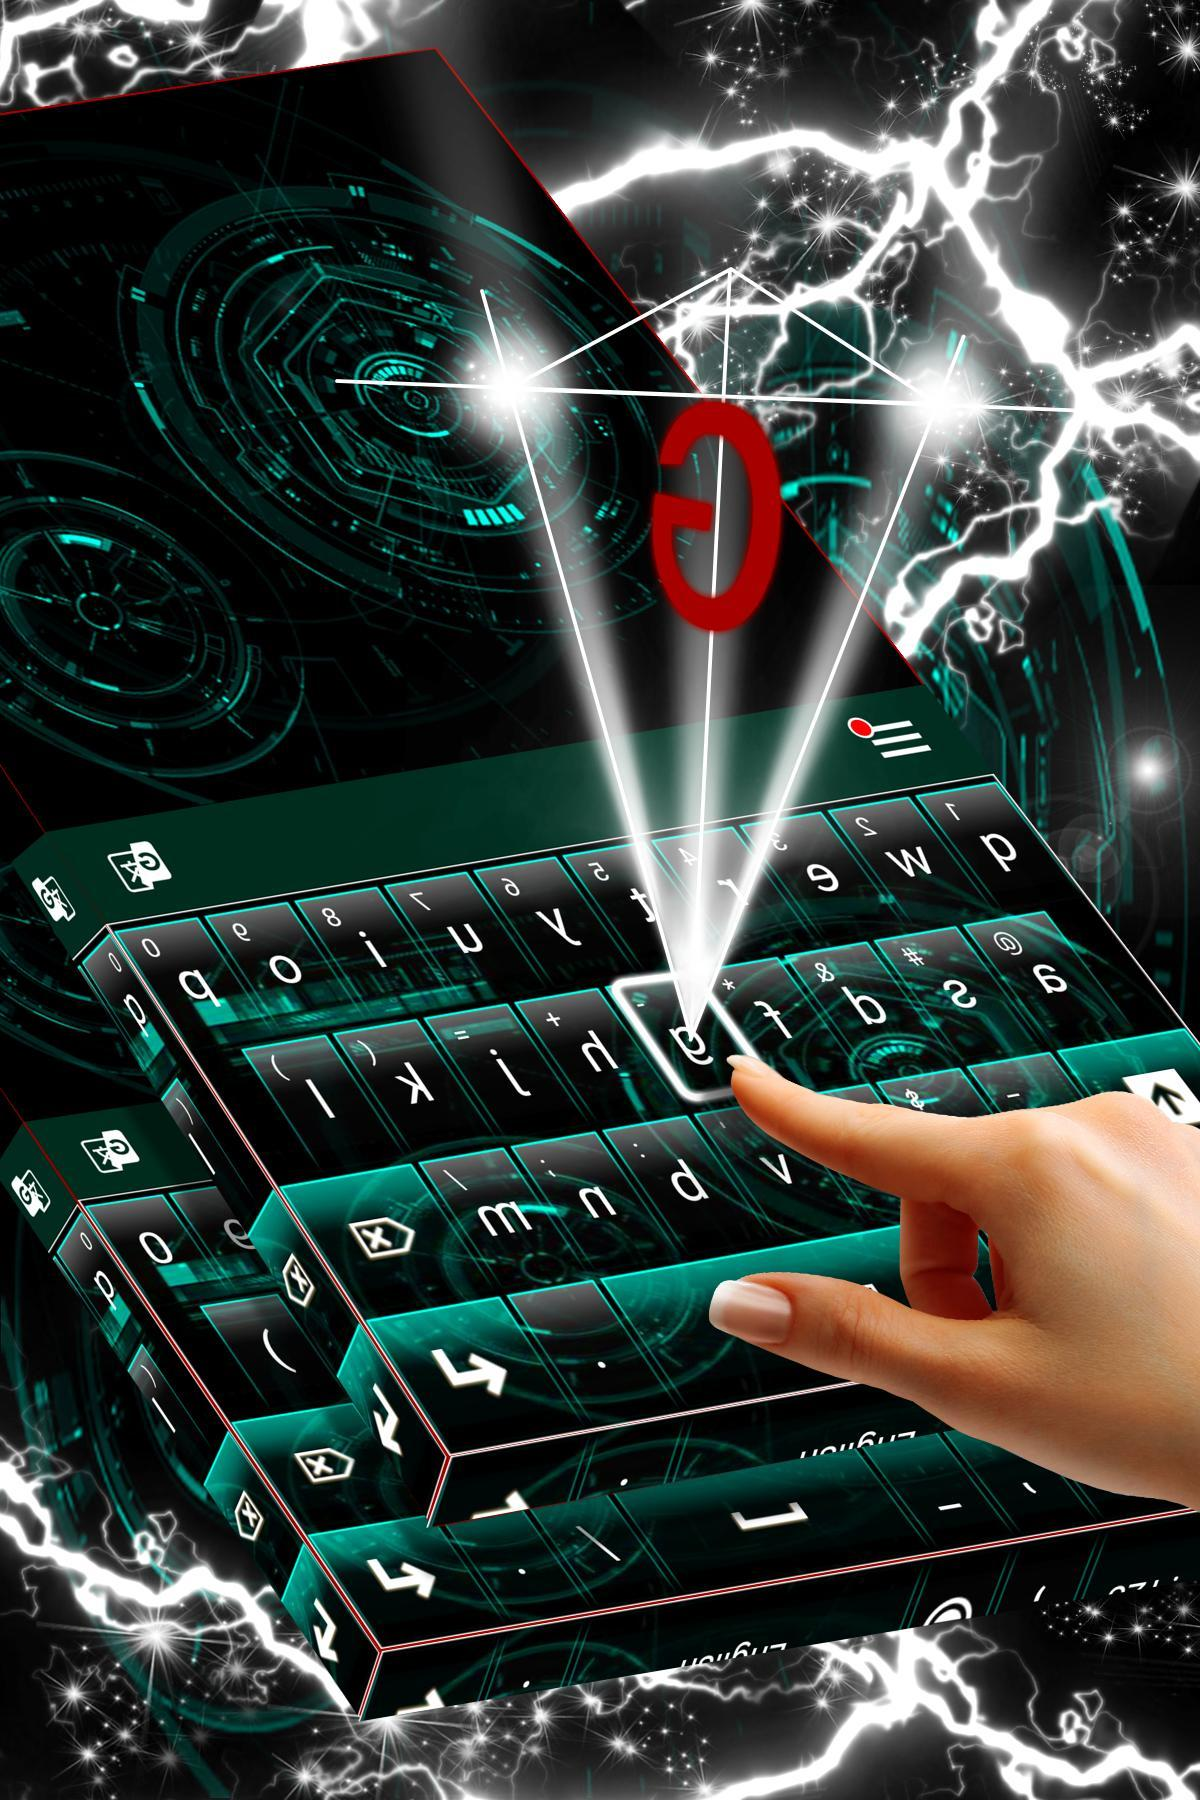 Techno Dark Keyboard Theme for Android - APK Download